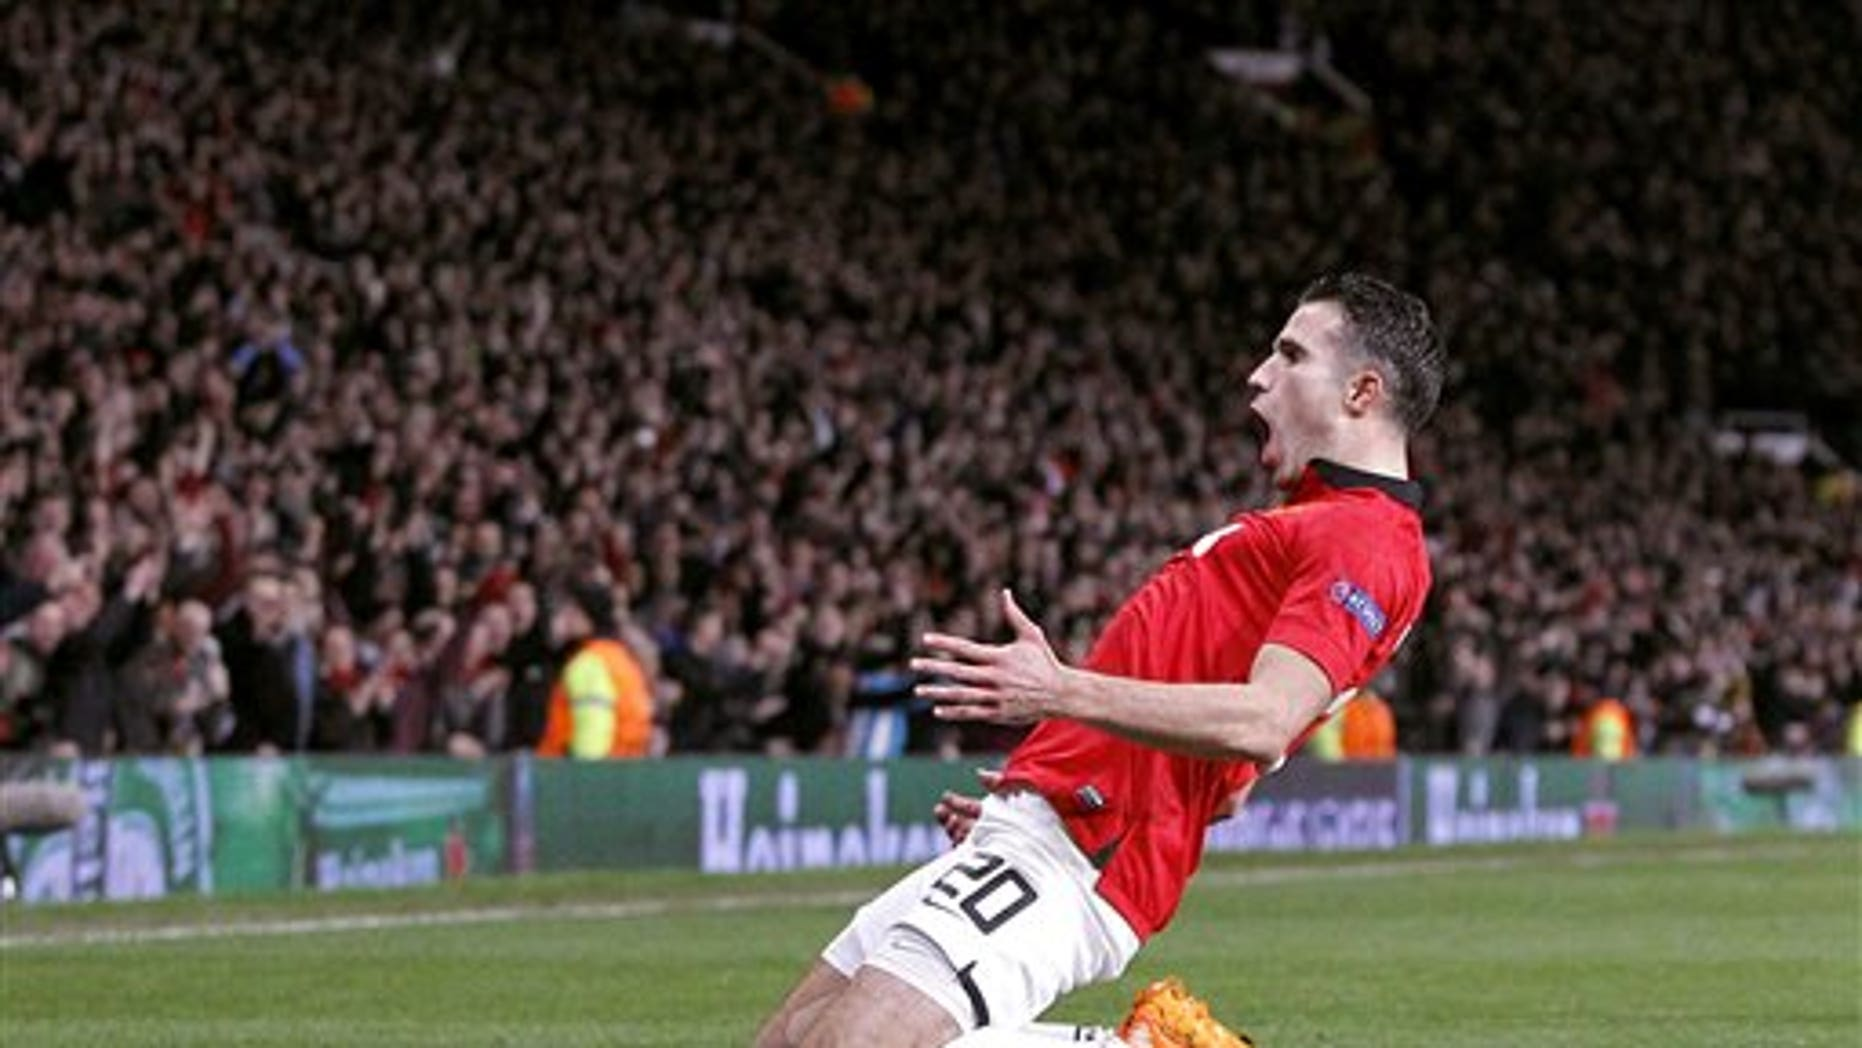 Manchester United's Robin van Persie celebrates scoring his side's third goal  and his hat-trick, during the Champions League, Round of 16, second leg match against Olympiakos,  at Old Trafford, Manchester,  England, Wednesday March 19, 2014. (AP Photo /PA, Peter Byrne) UNITED KINGDOM OUT NO SALES NO ARCHIVE